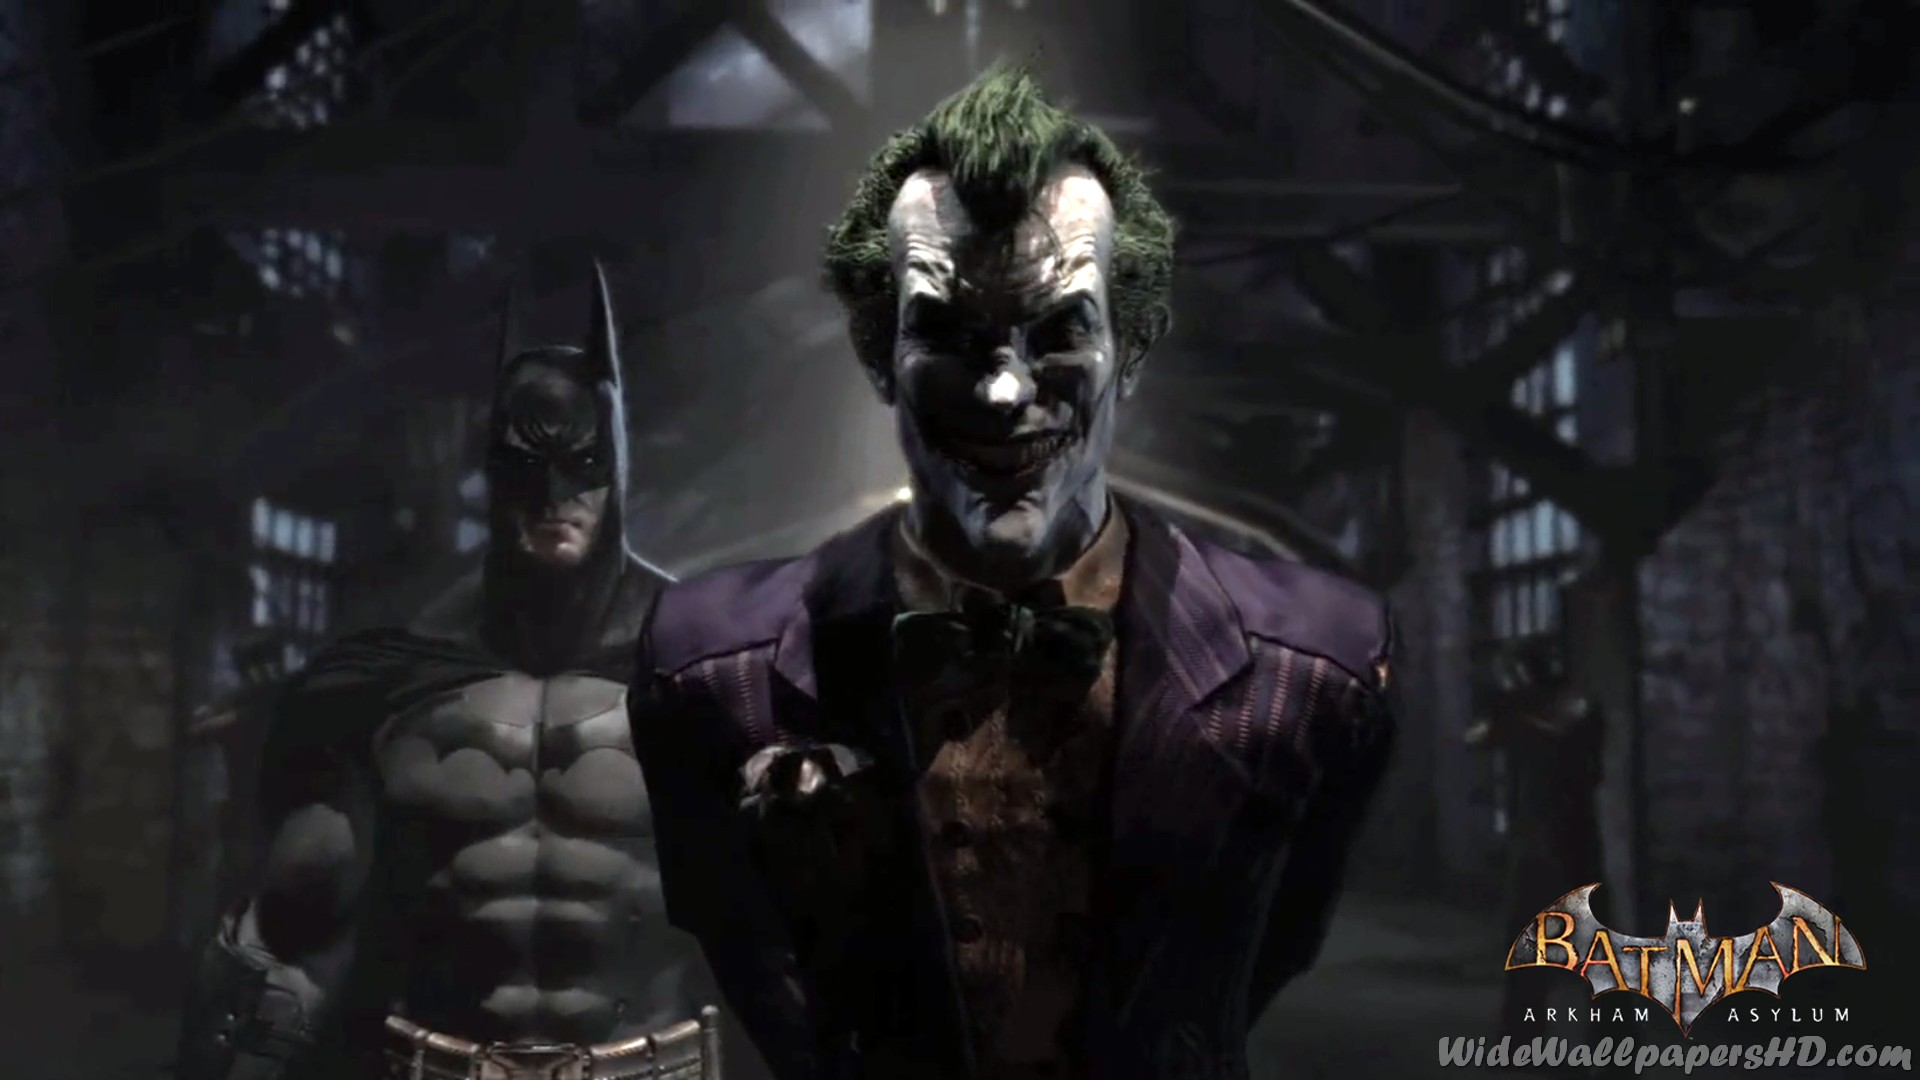 Image   Batman With Joker In Pen Batman Arkham Asylum Wallpapersjpg 1920x1080